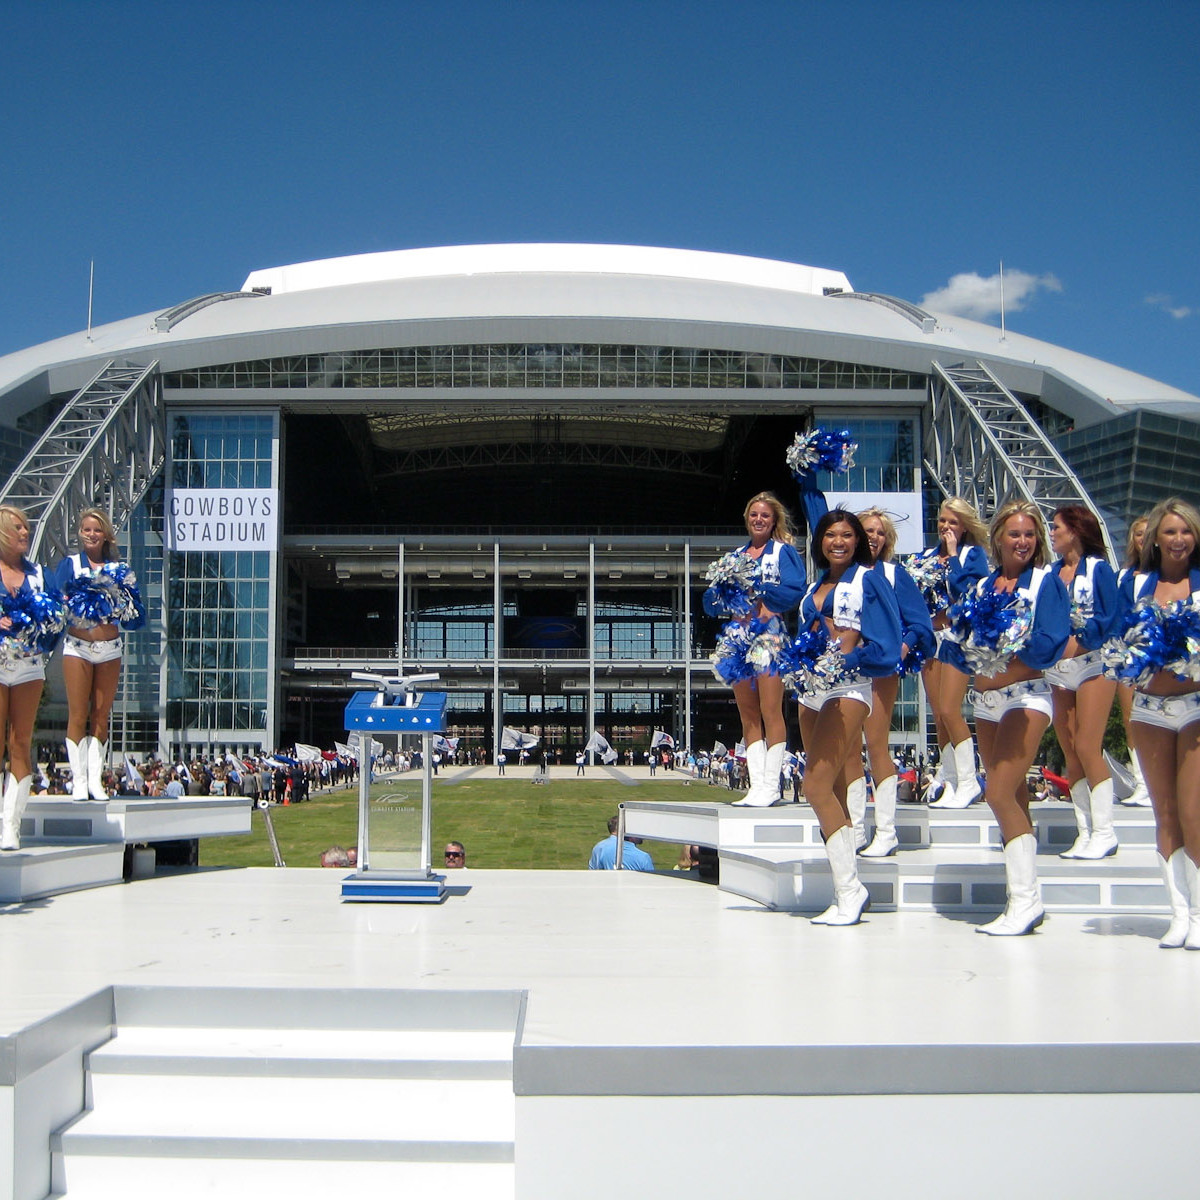 Dallas Cowboys cheerleaders at Cowboys Stadium in Arlington